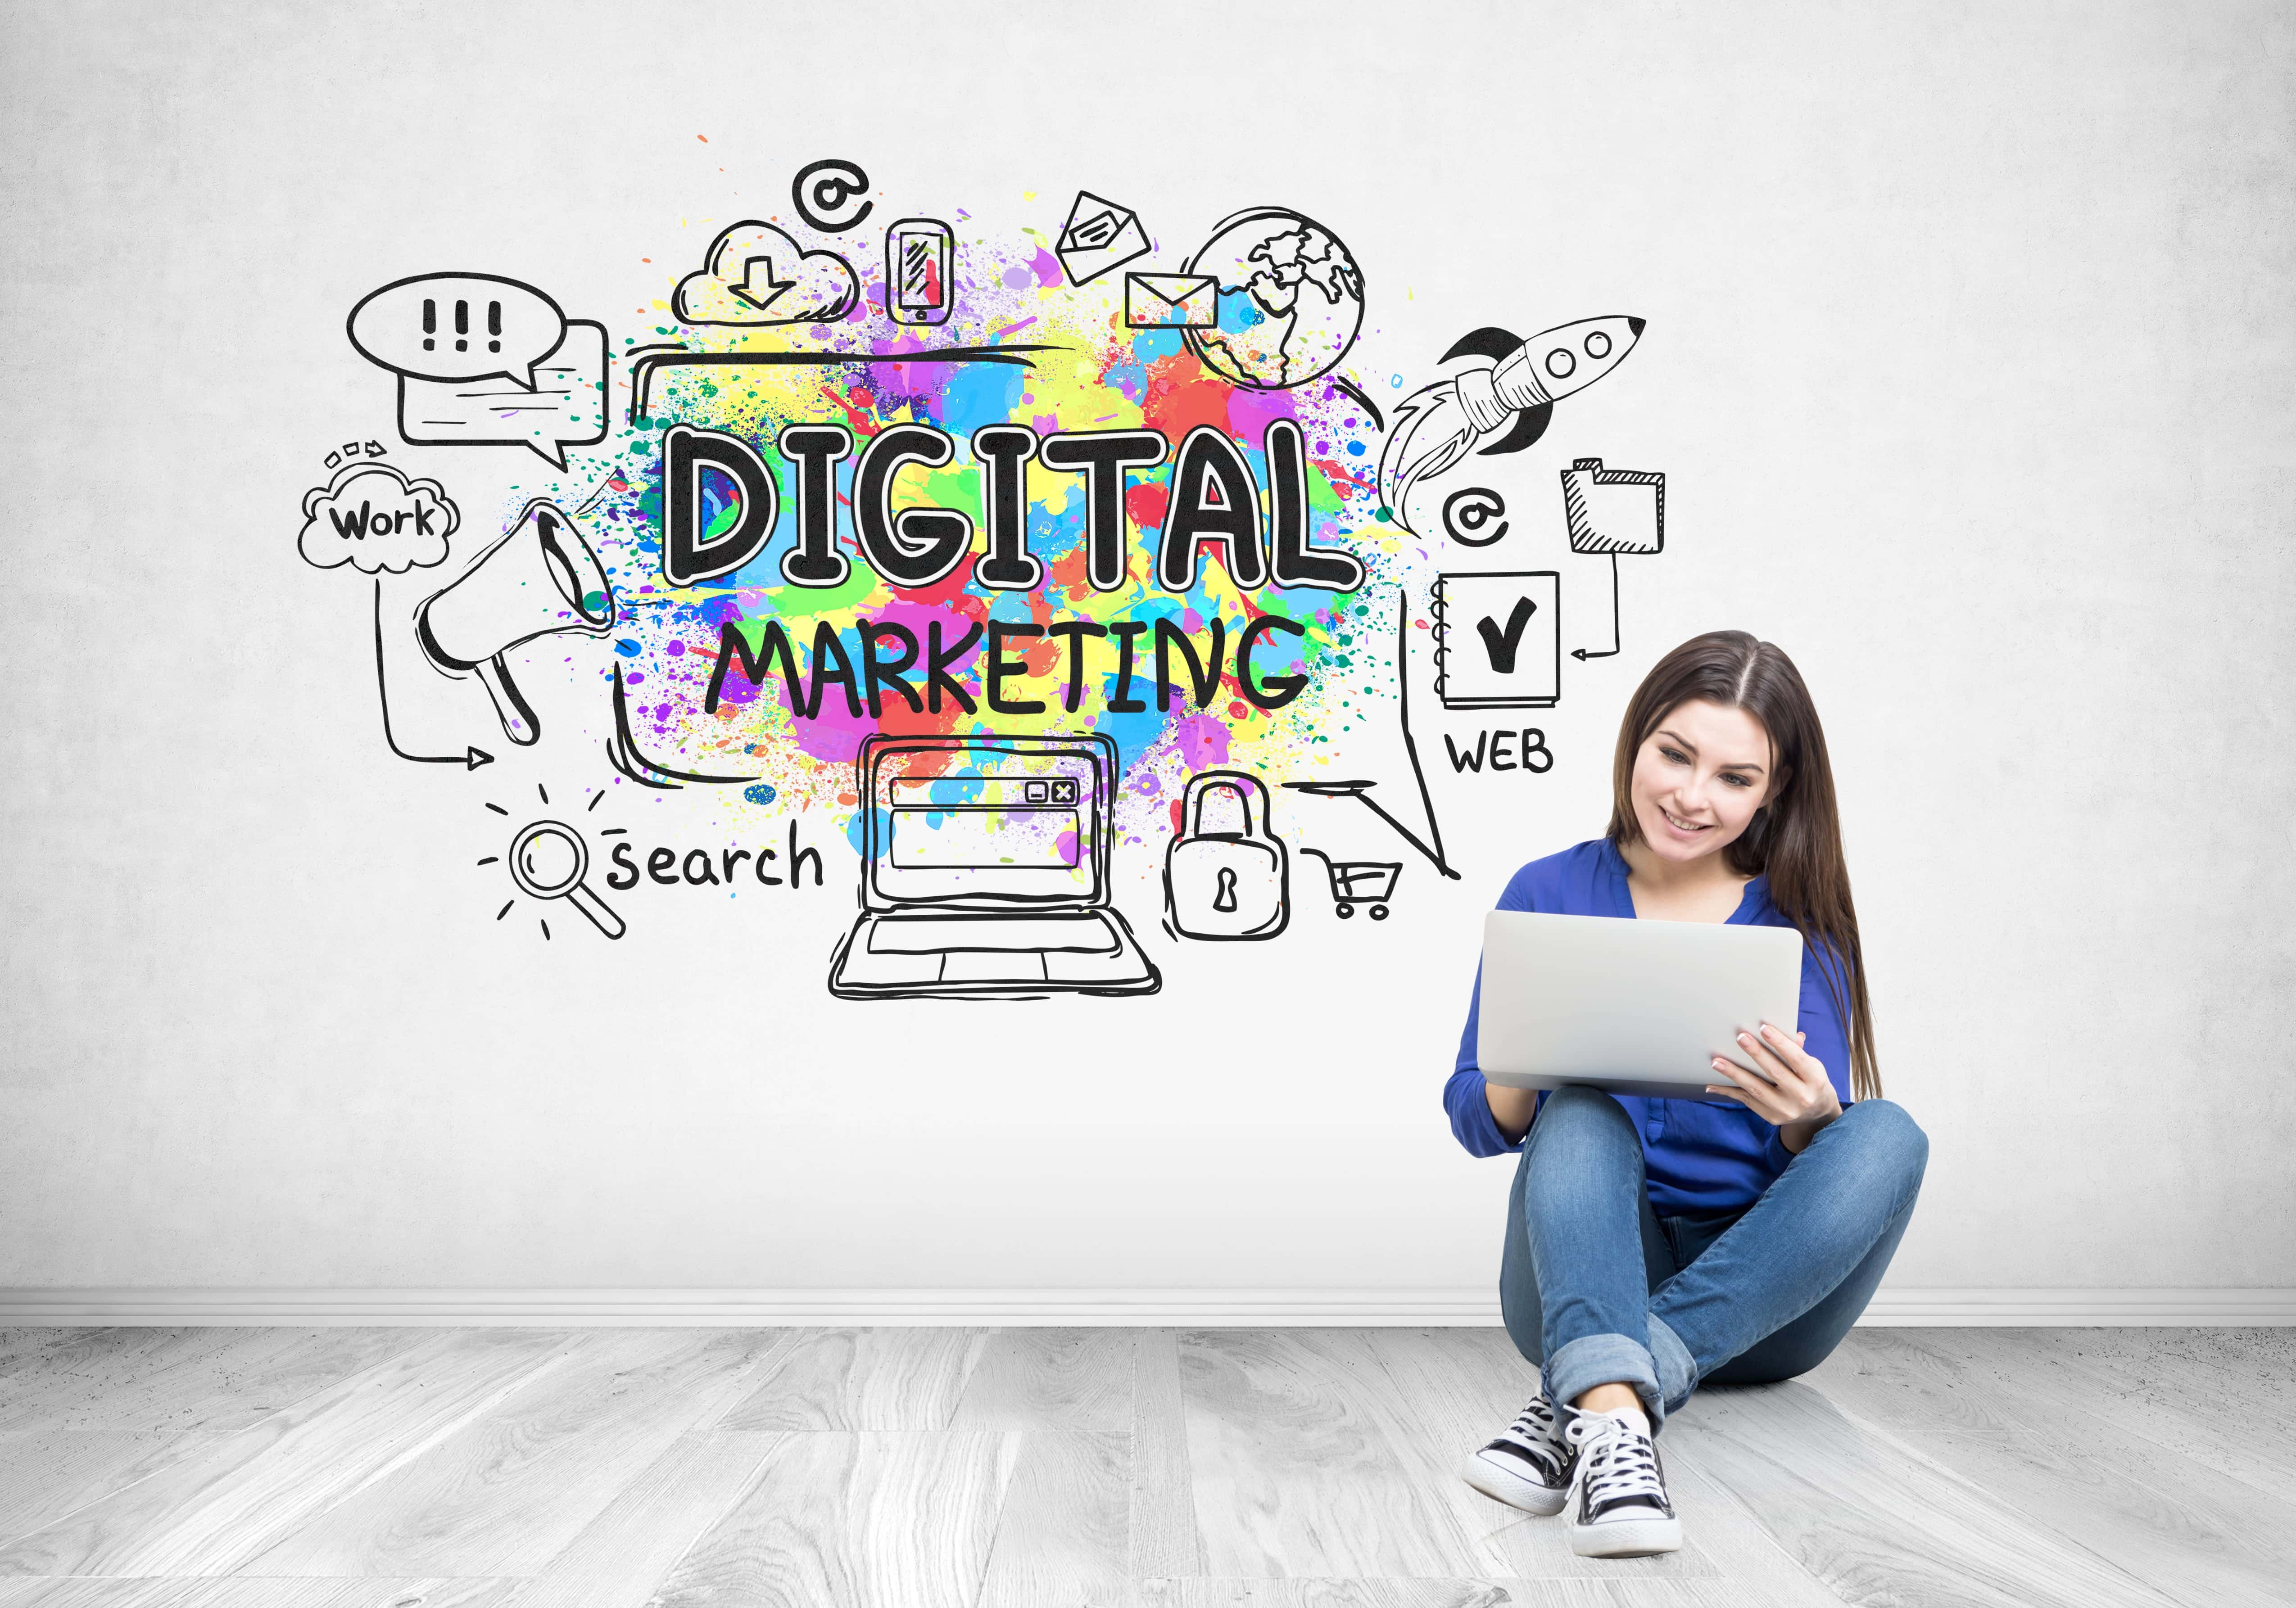 Digital Marketing Career